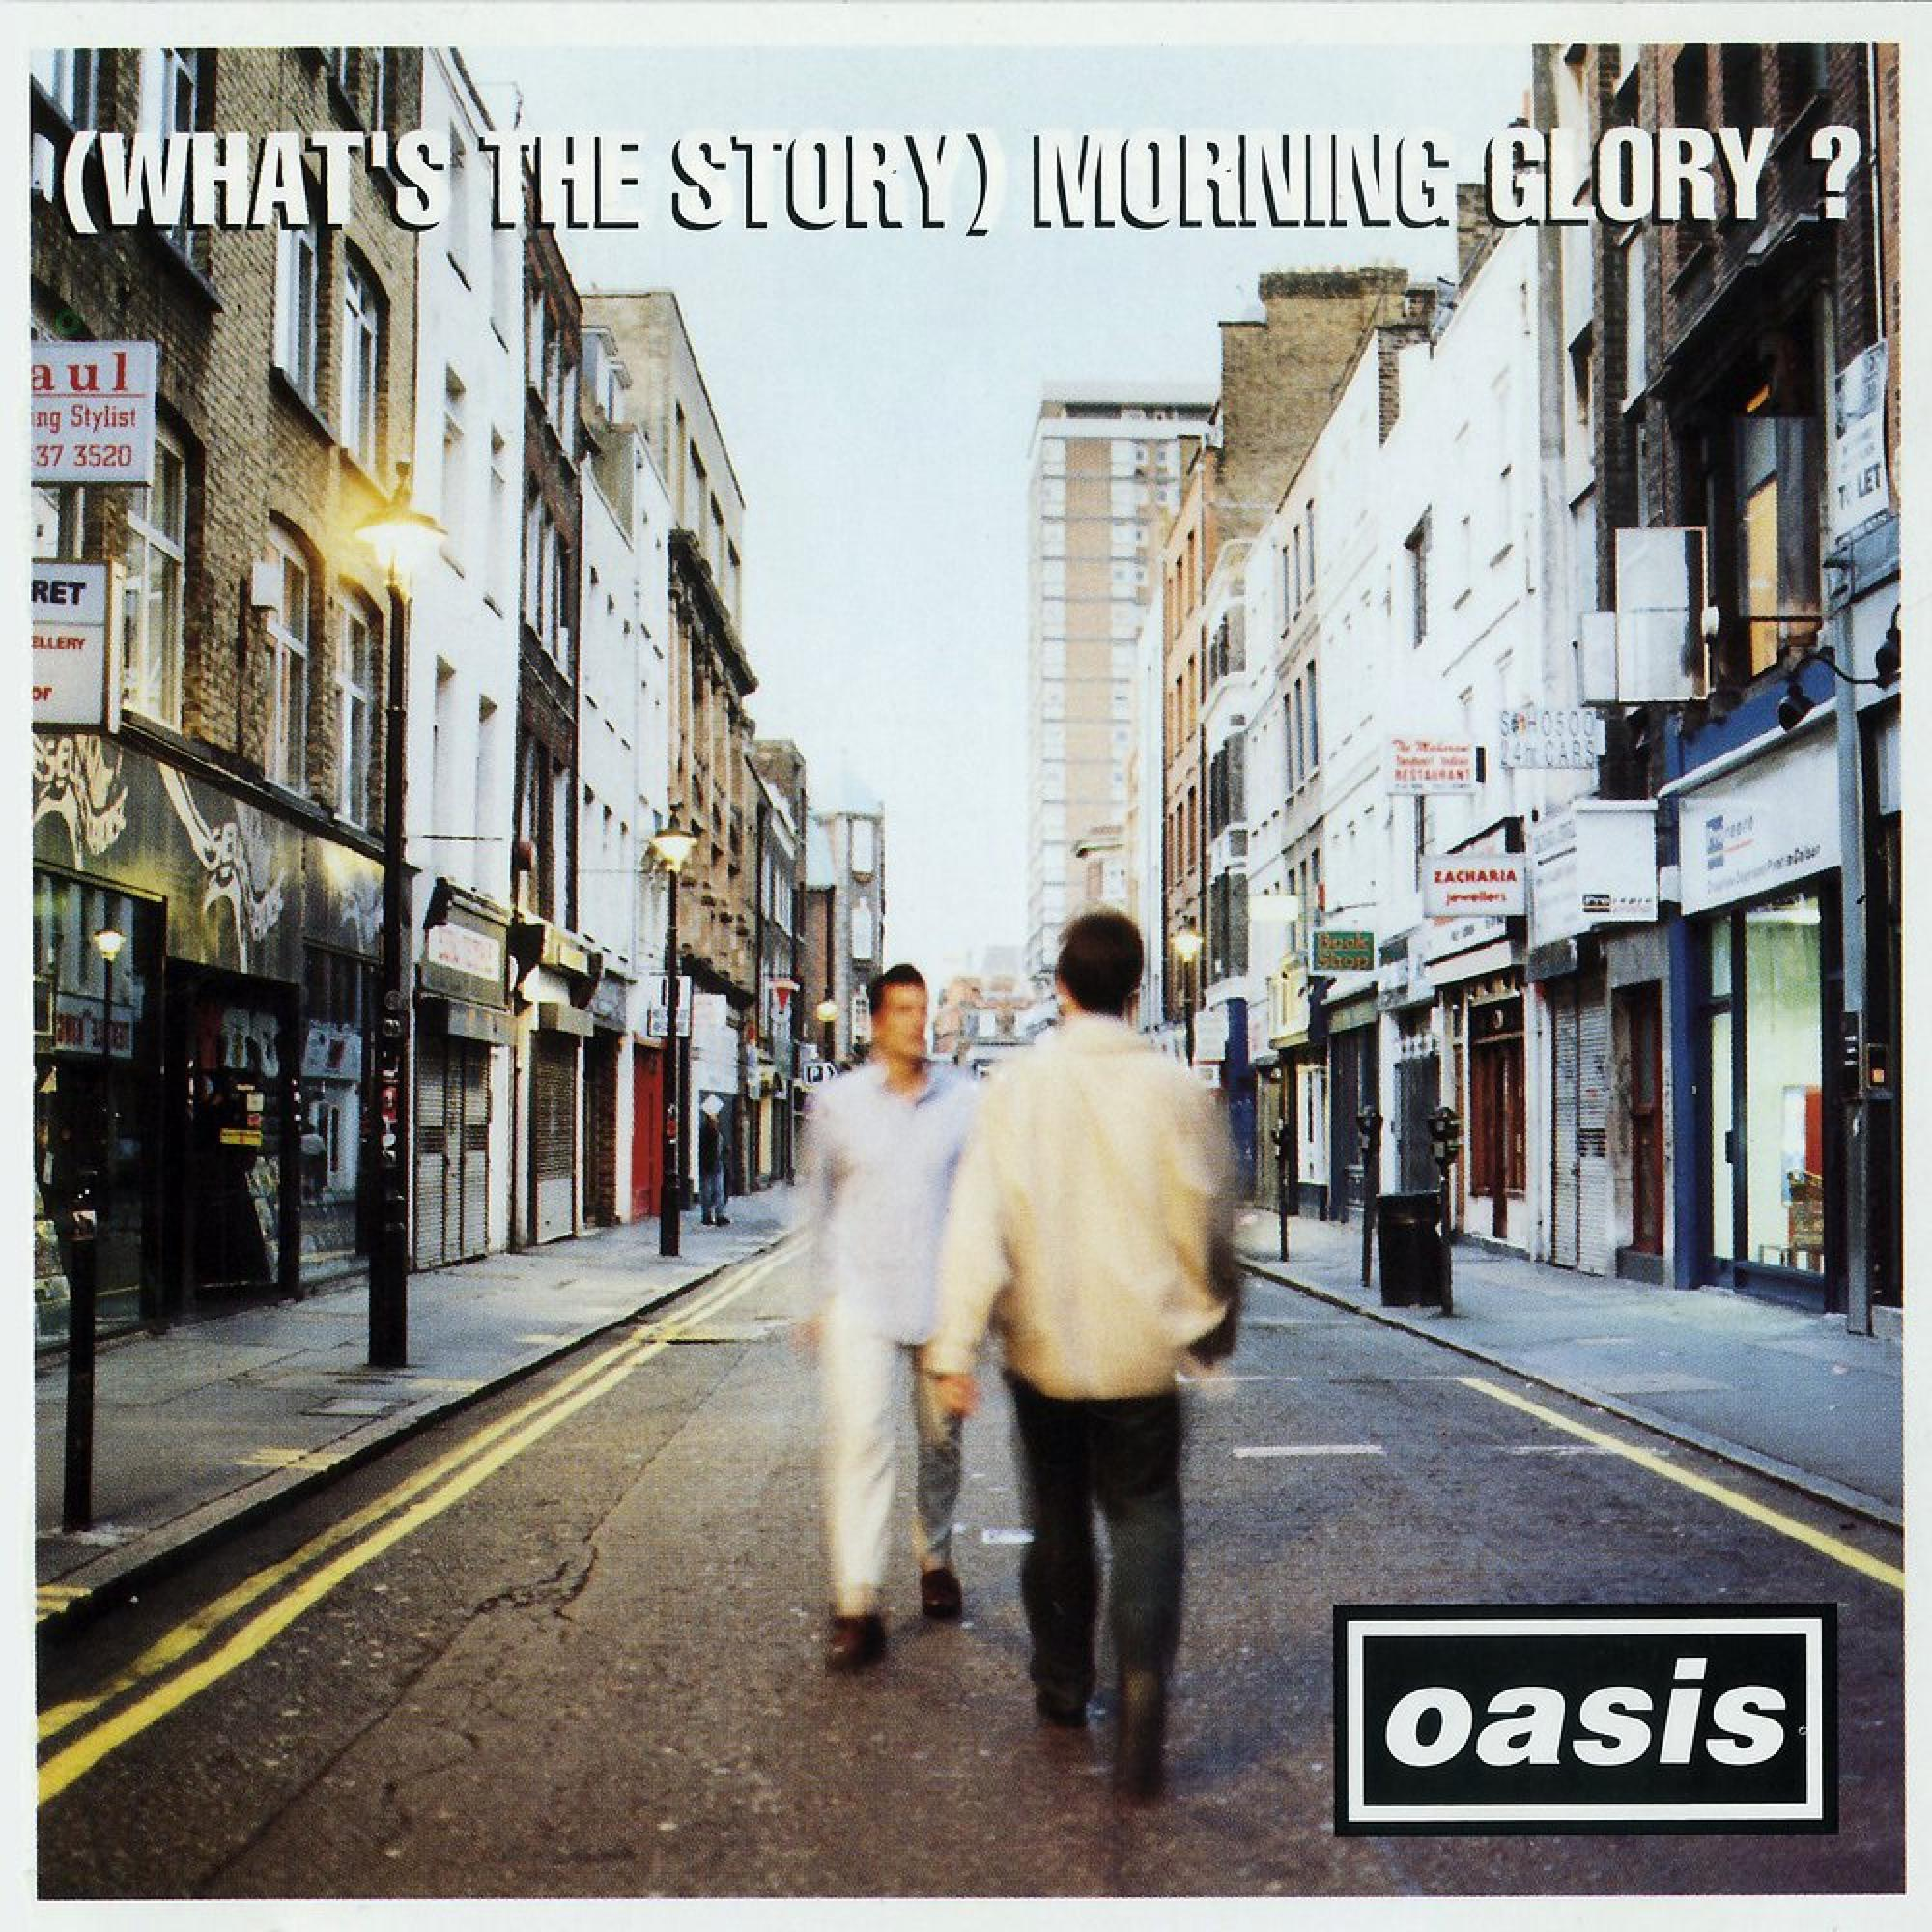 OASIS – (What's The Story) Morning Glory? (25th Anniversary ) – 2LP – Limited Silver Vinyl [OCT 2nd]